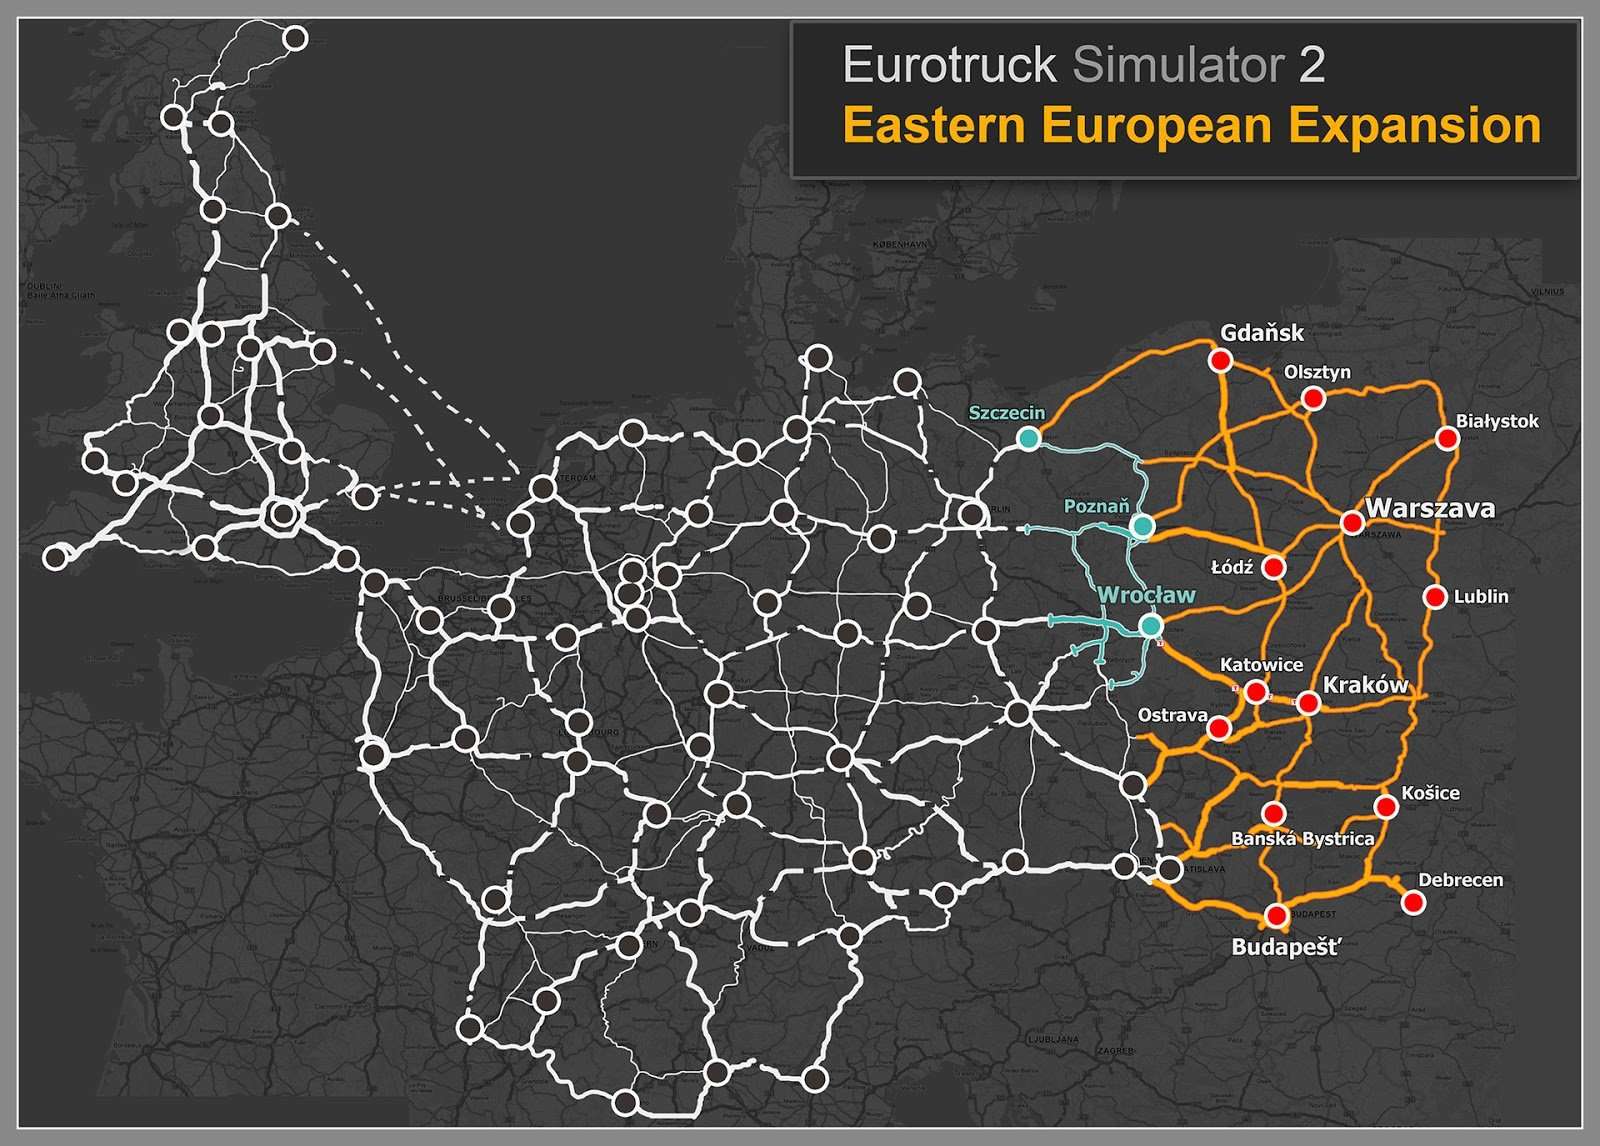 EuroTruck Simulator 2 Eastern European Expansion